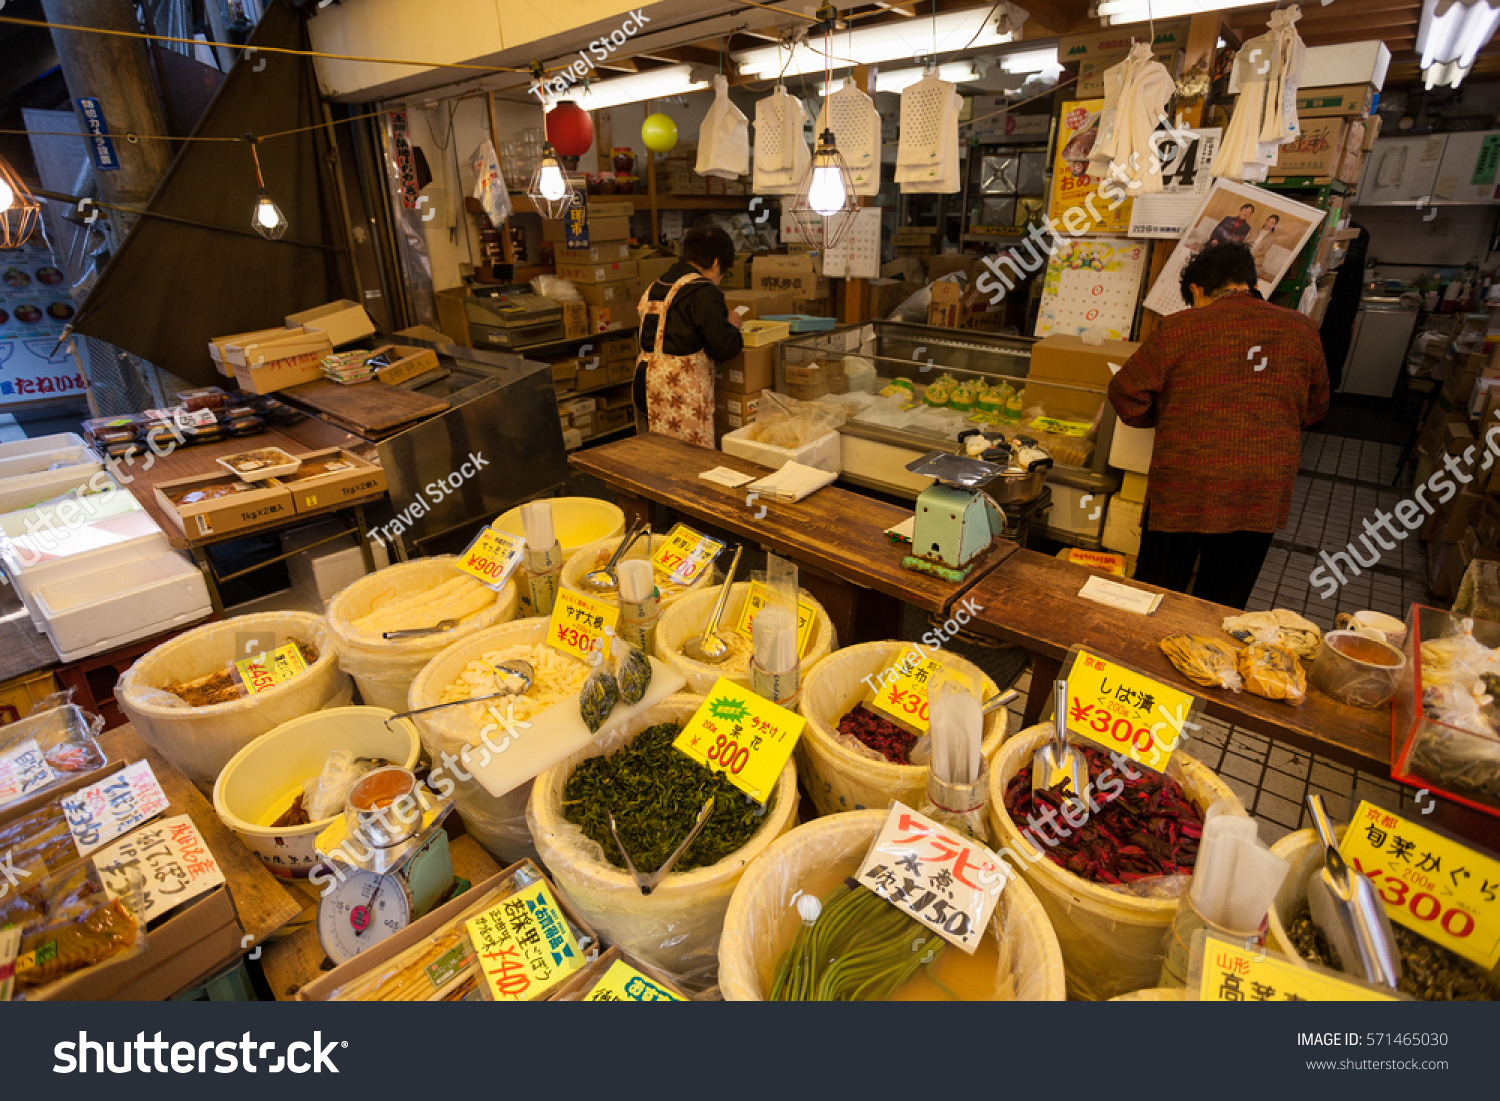 Tokyo japan march 24 fish seafood stock photo 571465030 for Wholesale fish market near me